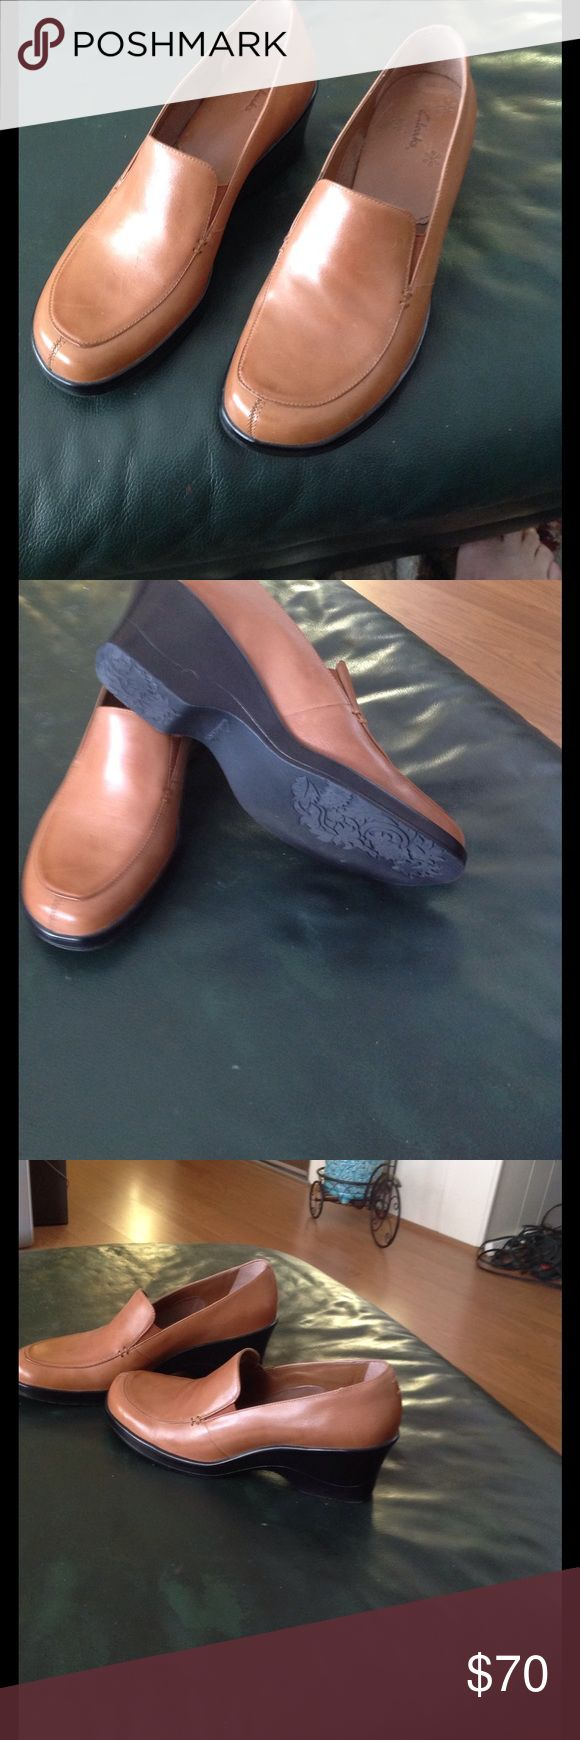 Clarks dark tan leather shoes Dark tan clarks leather wedge closed toed shoe size 9M. Worn one time in excellent condition. Clarks Shoes Wedges